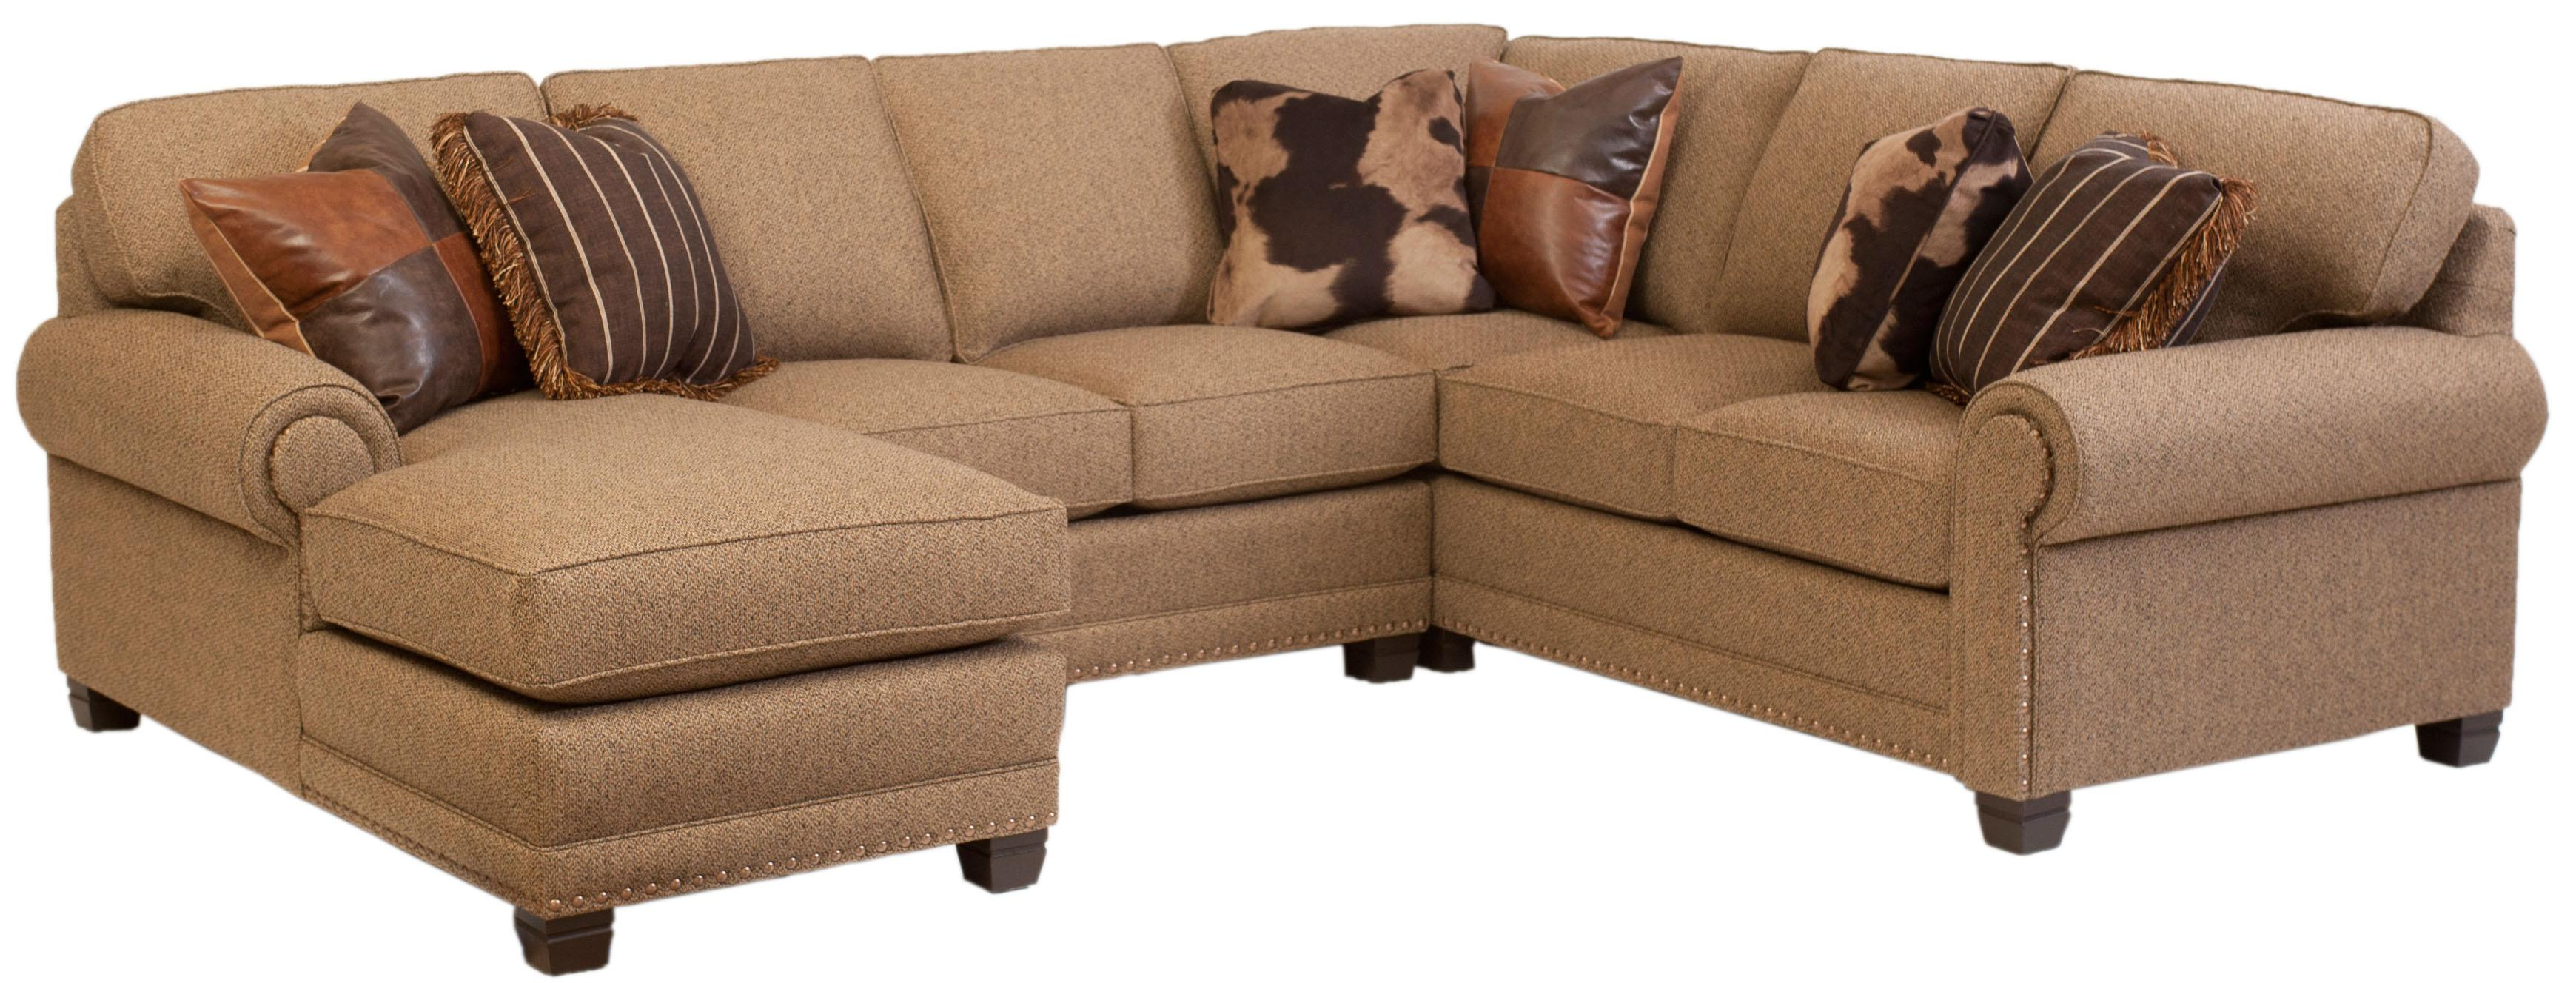 Traditional 3 piece Sectional Sofa with Left Arm Facing Chaise by